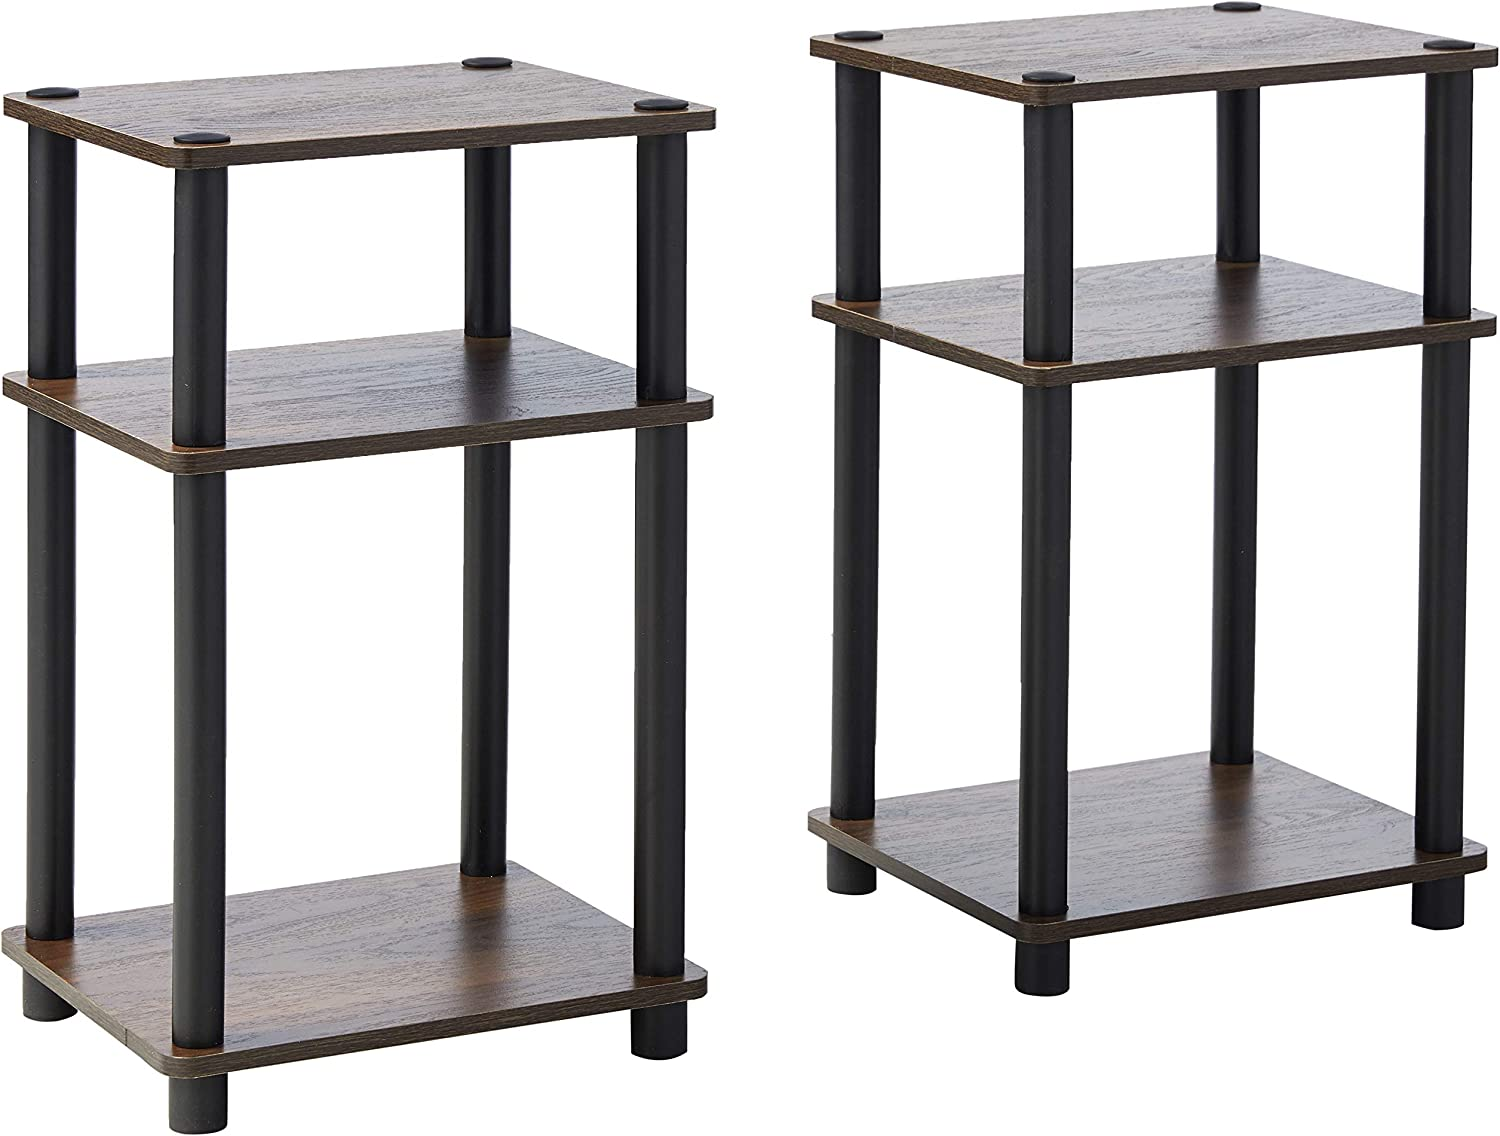 FURINNO Just 3-Tier Turn-N-Tube 2-Pack Table Columbia End Direct store Discount mail order Walnu